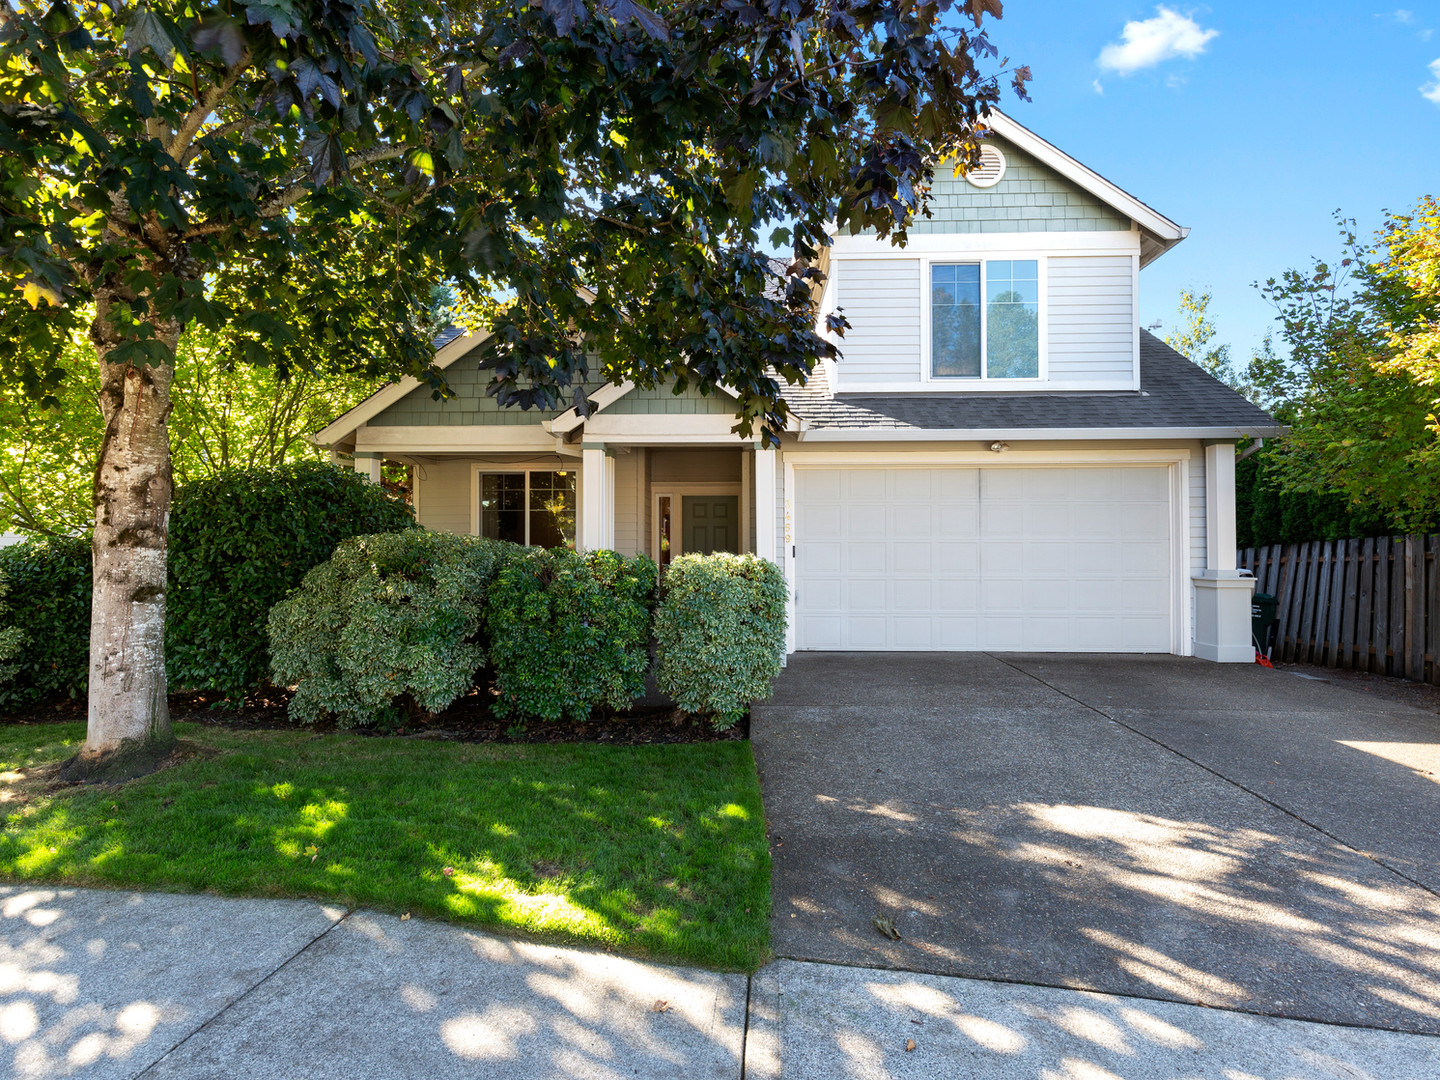 3459 NW 115th Ave (32 of 34).jpg